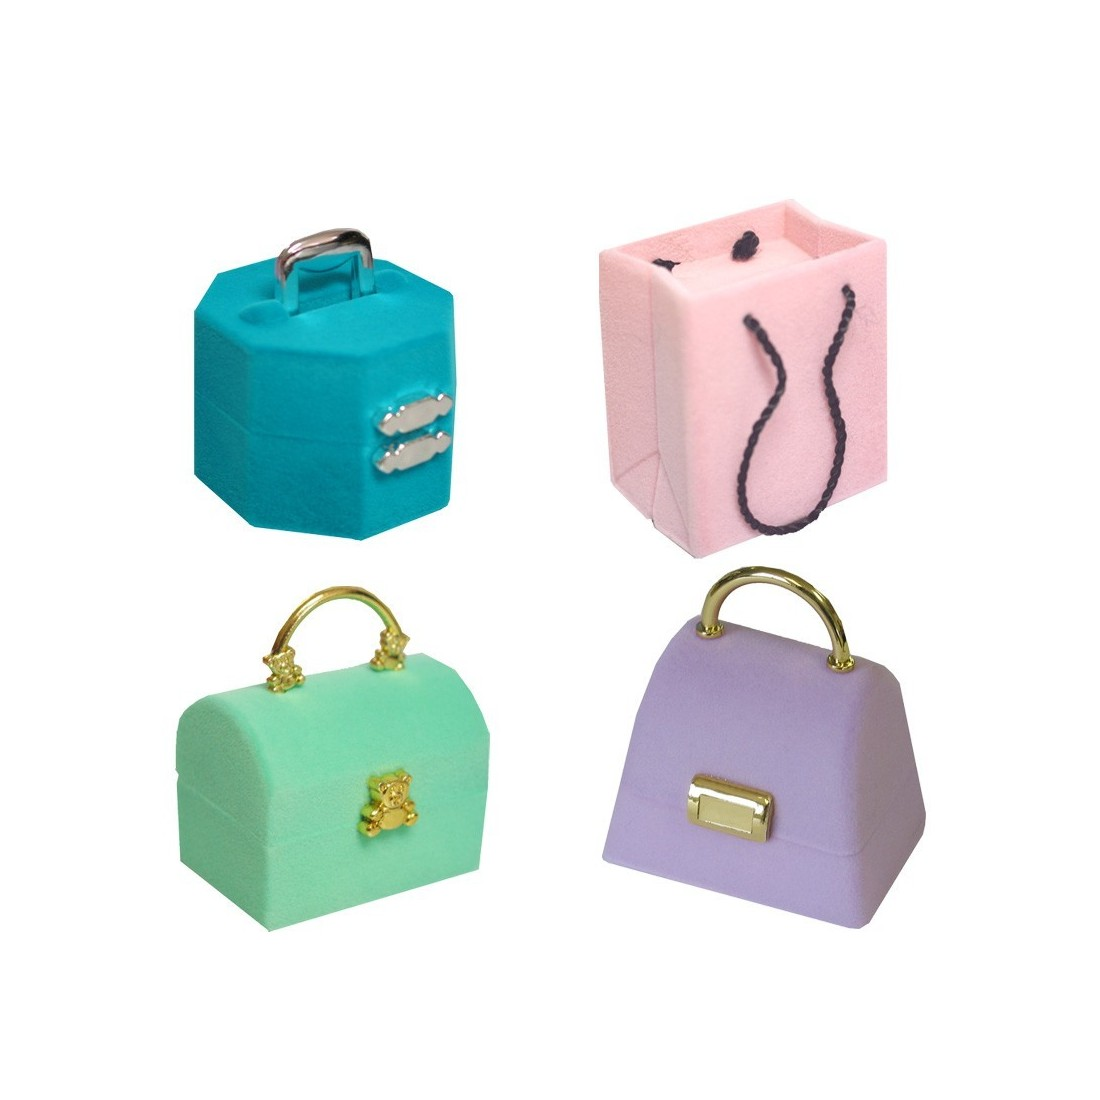 In.Bag Flock Jewellery Box